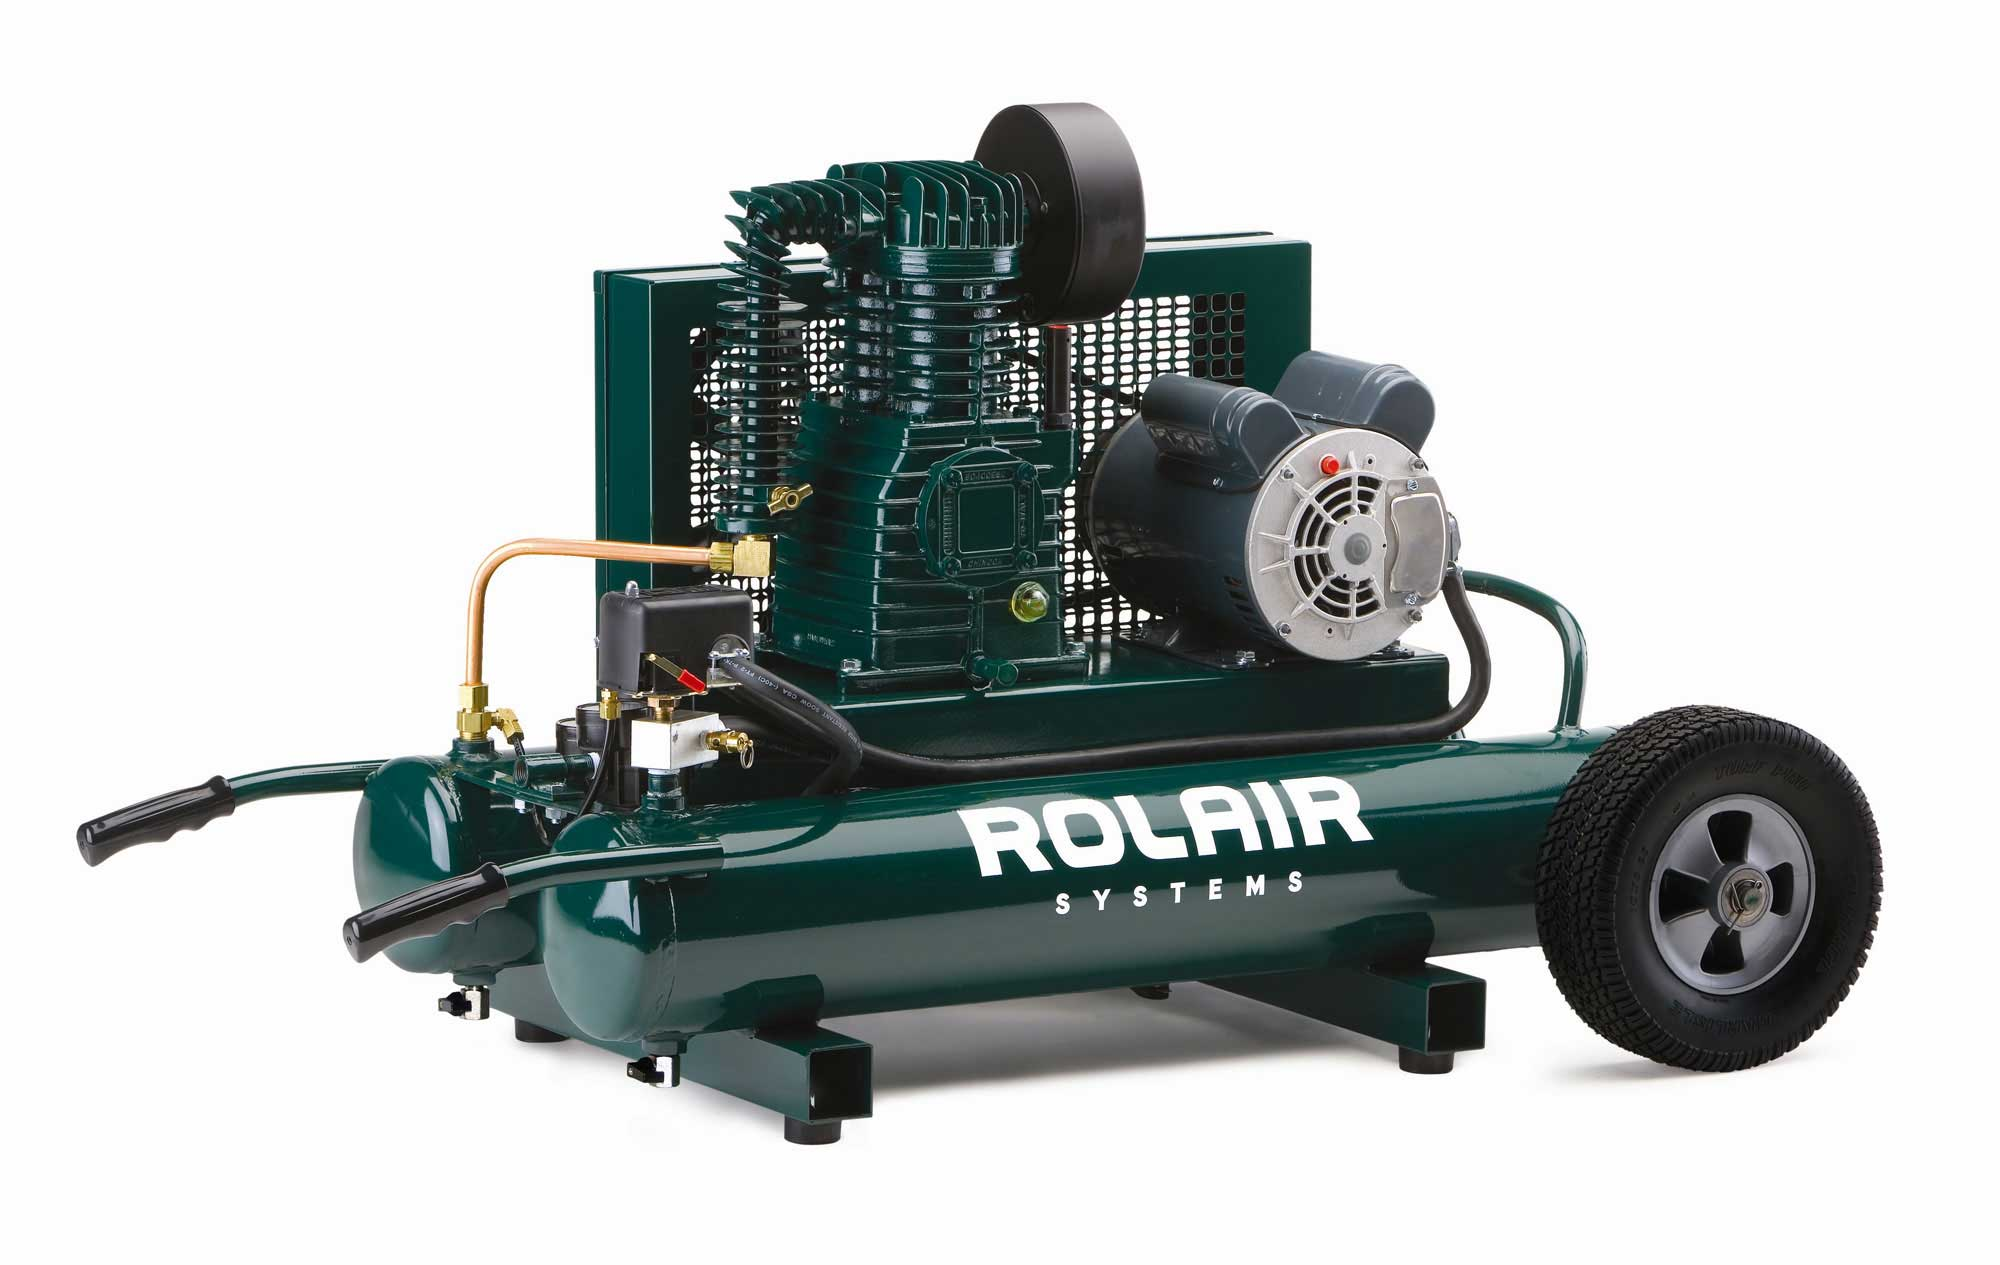 Rolair 1.5 HP 9 Gallon Electric Wheelbarrow Air Compressor 6715K17